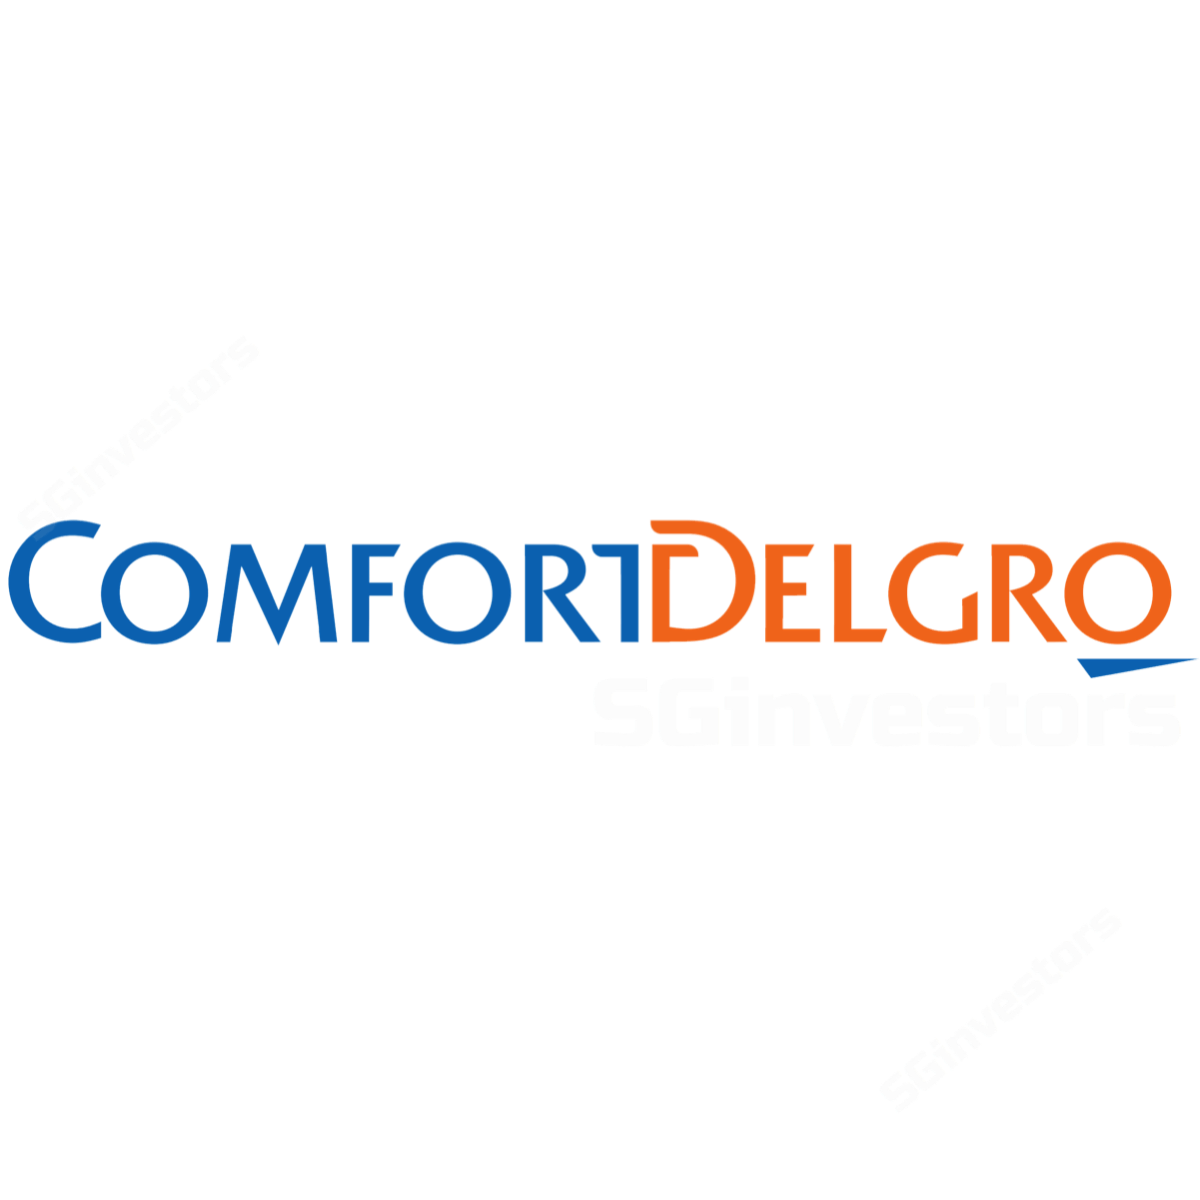 ComfortDelGro - CIMB Research 2016-12-21: Overseas acquisition driving growth